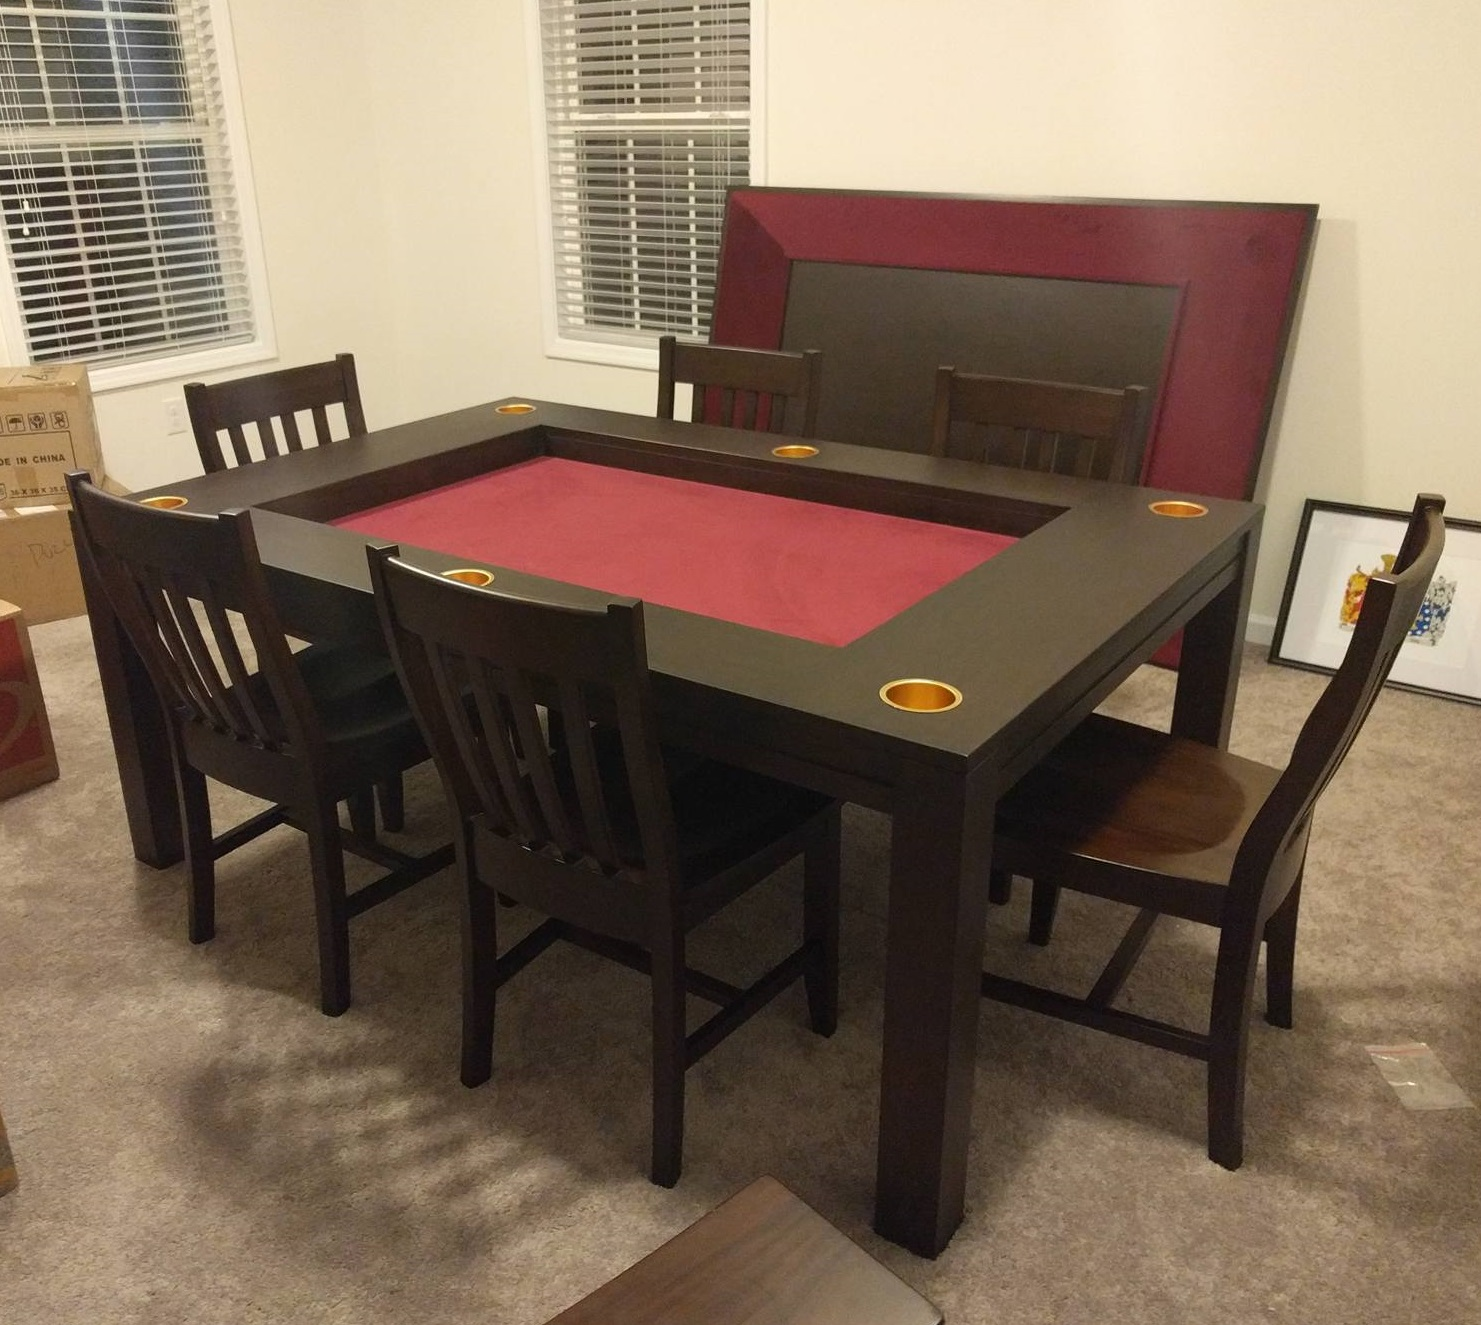 Cup holder for gaming tables!  BGEZPOB